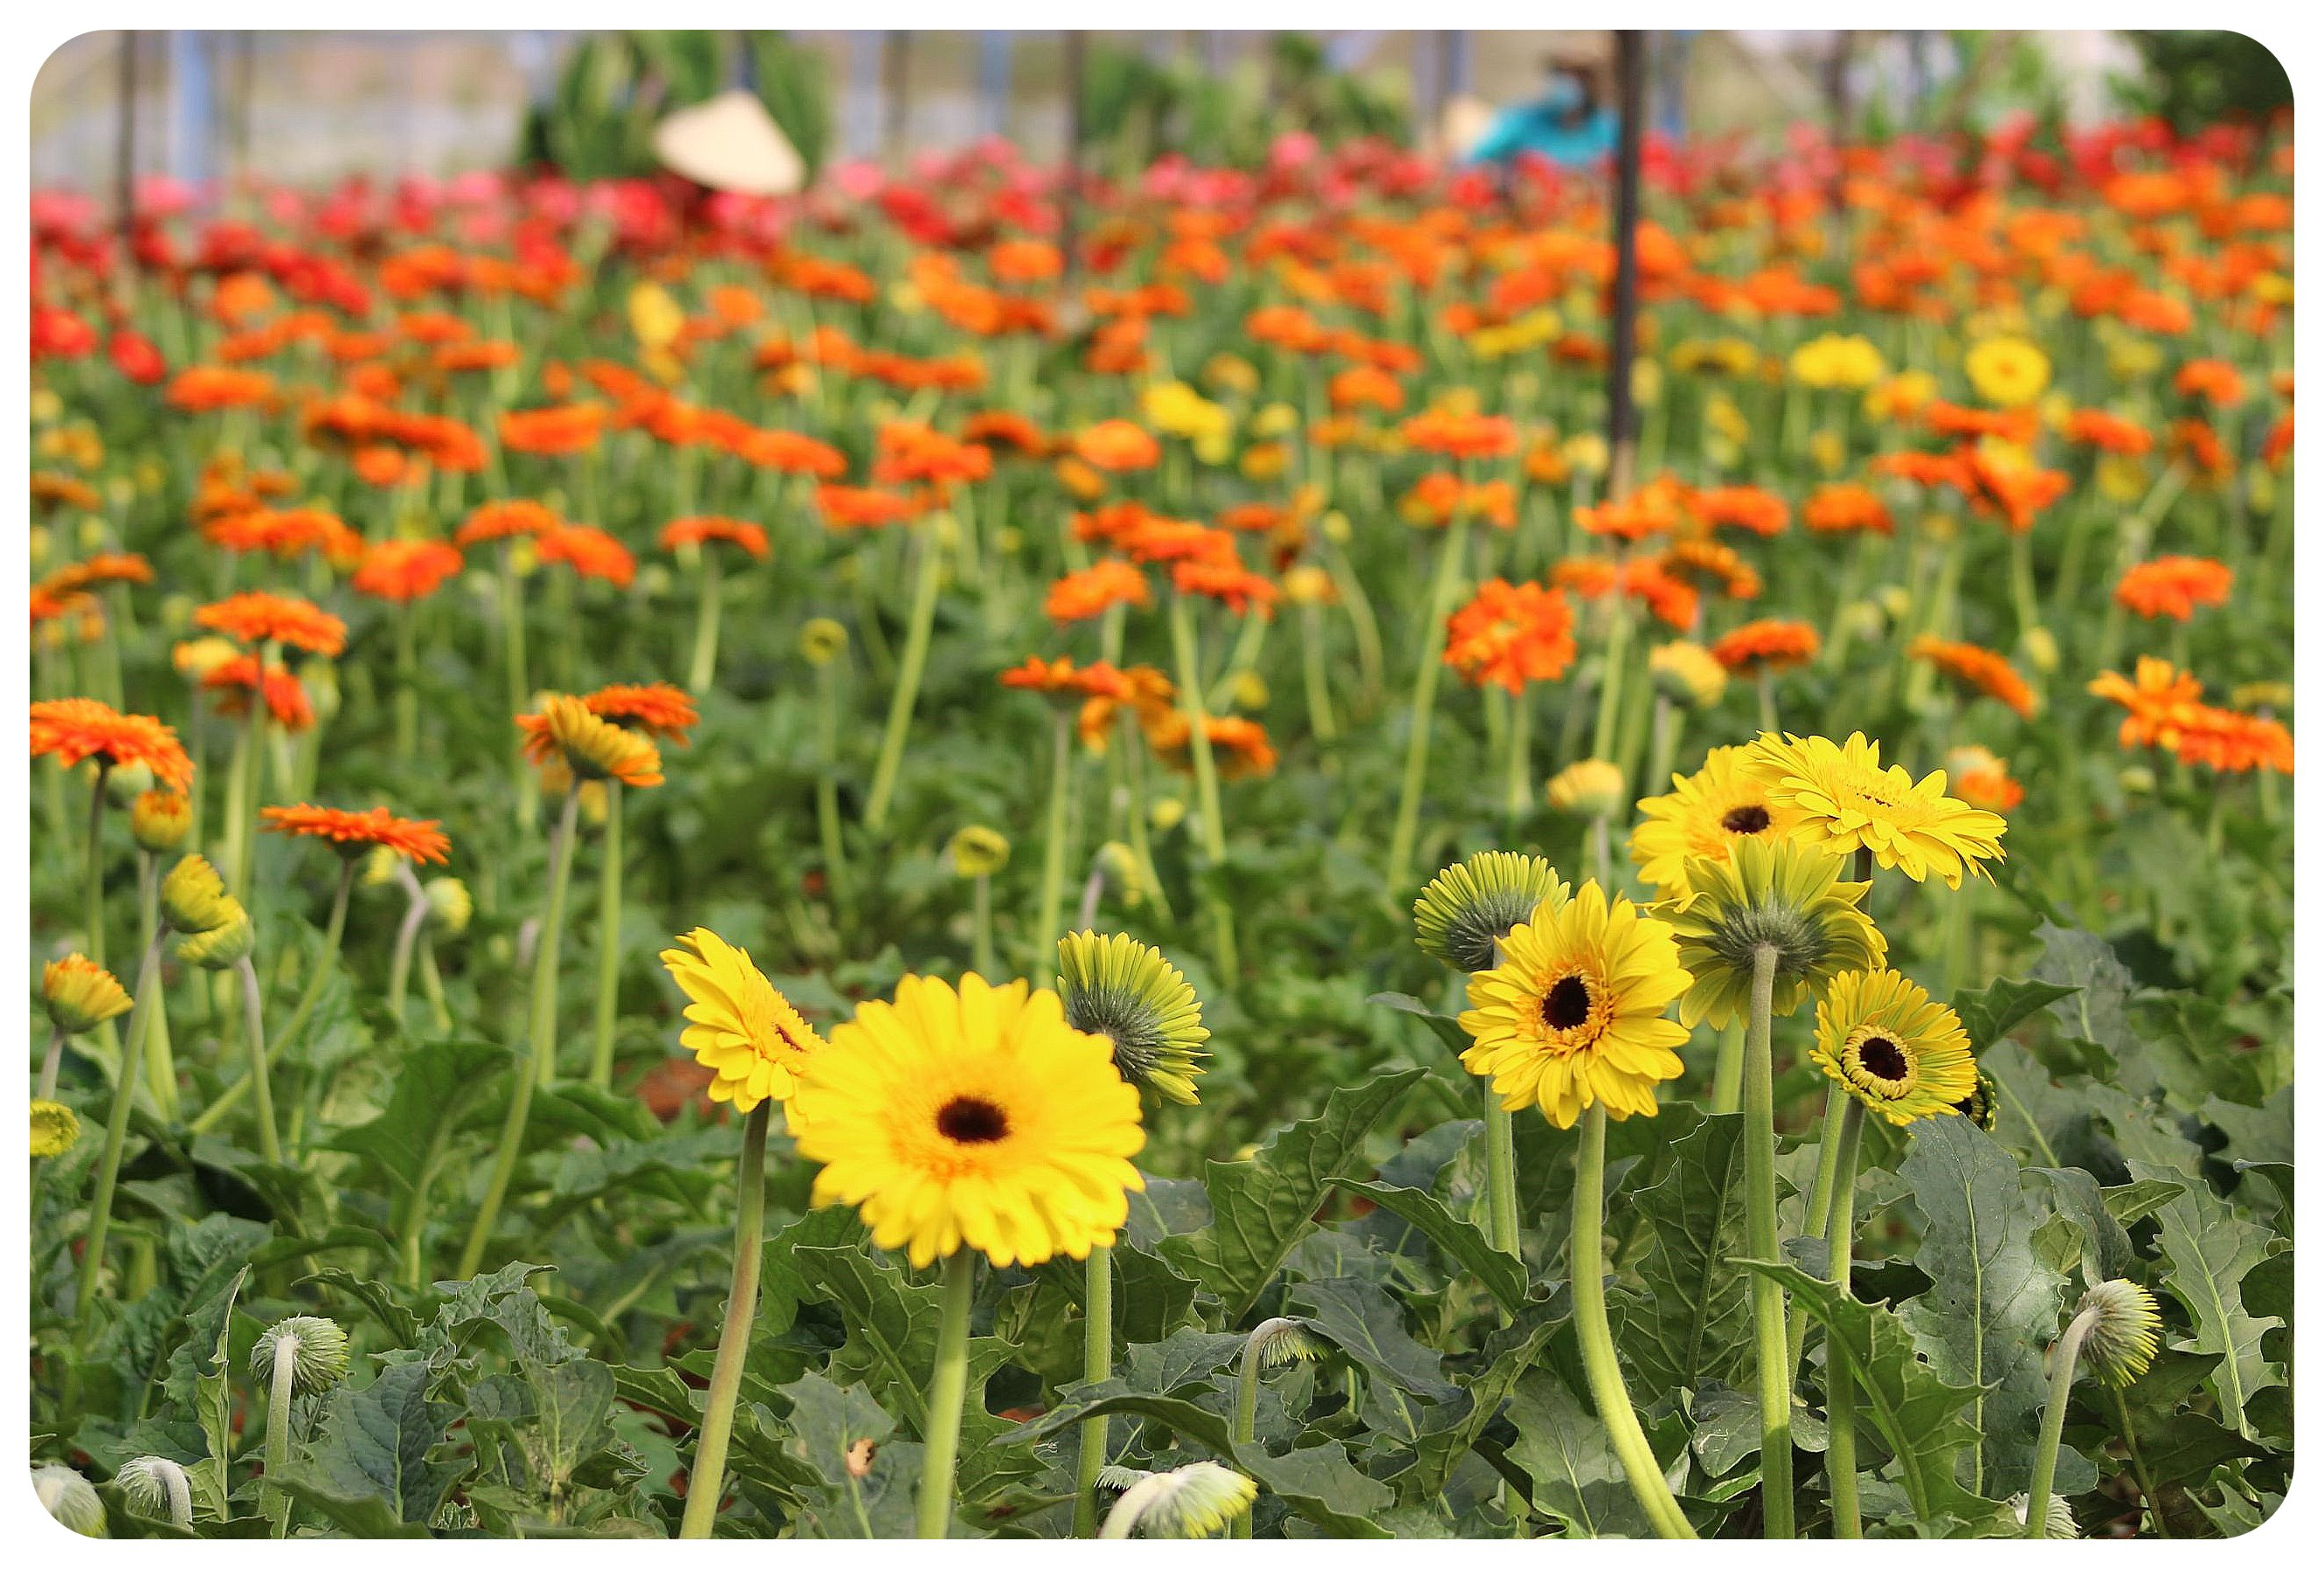 flower farm near dalat